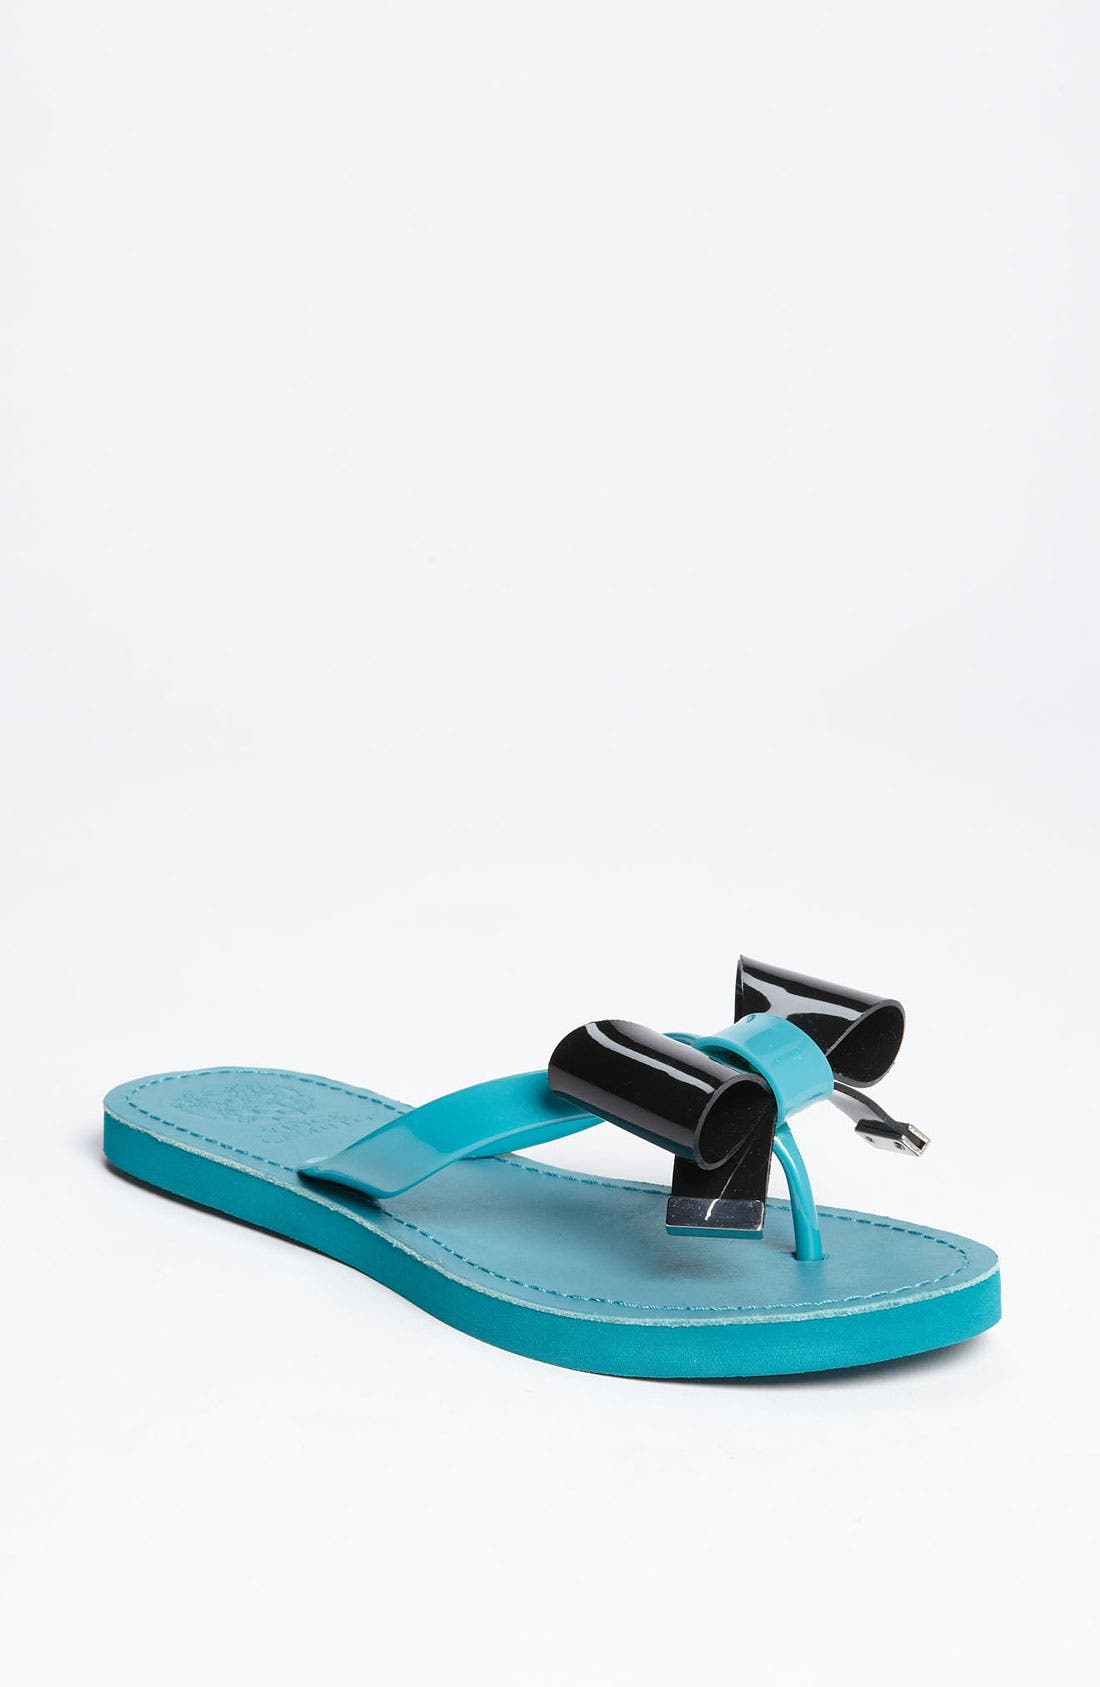 Alternate Image 1 Selected - Vince Camuto 'Fynn' Flip Flop (Nordstrom Exclusive)